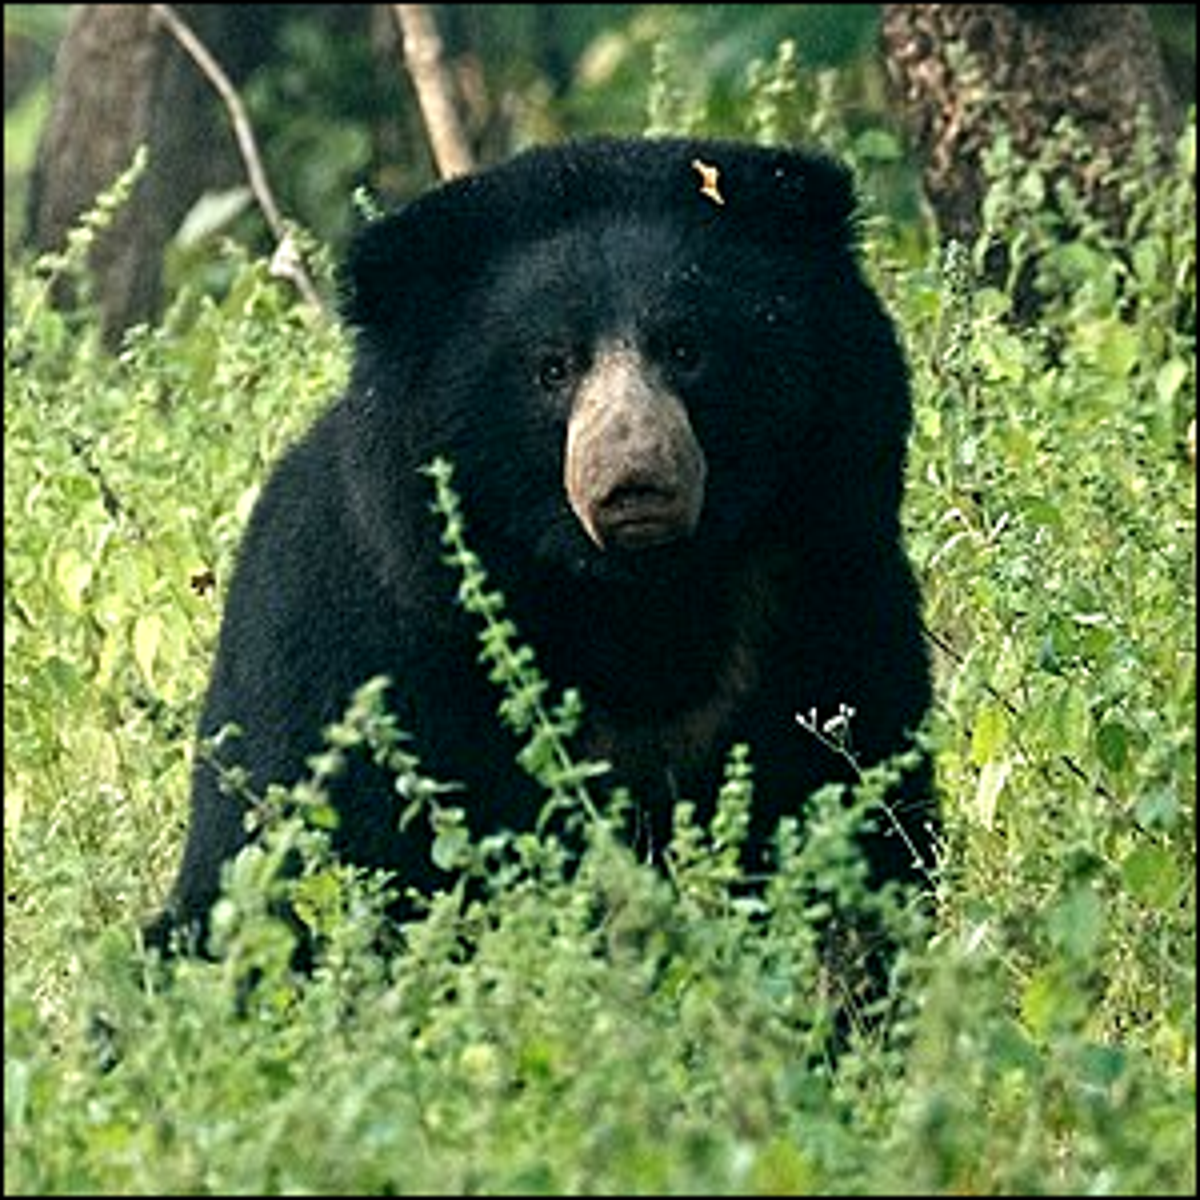 Photo of a bear sitting in a meadow.